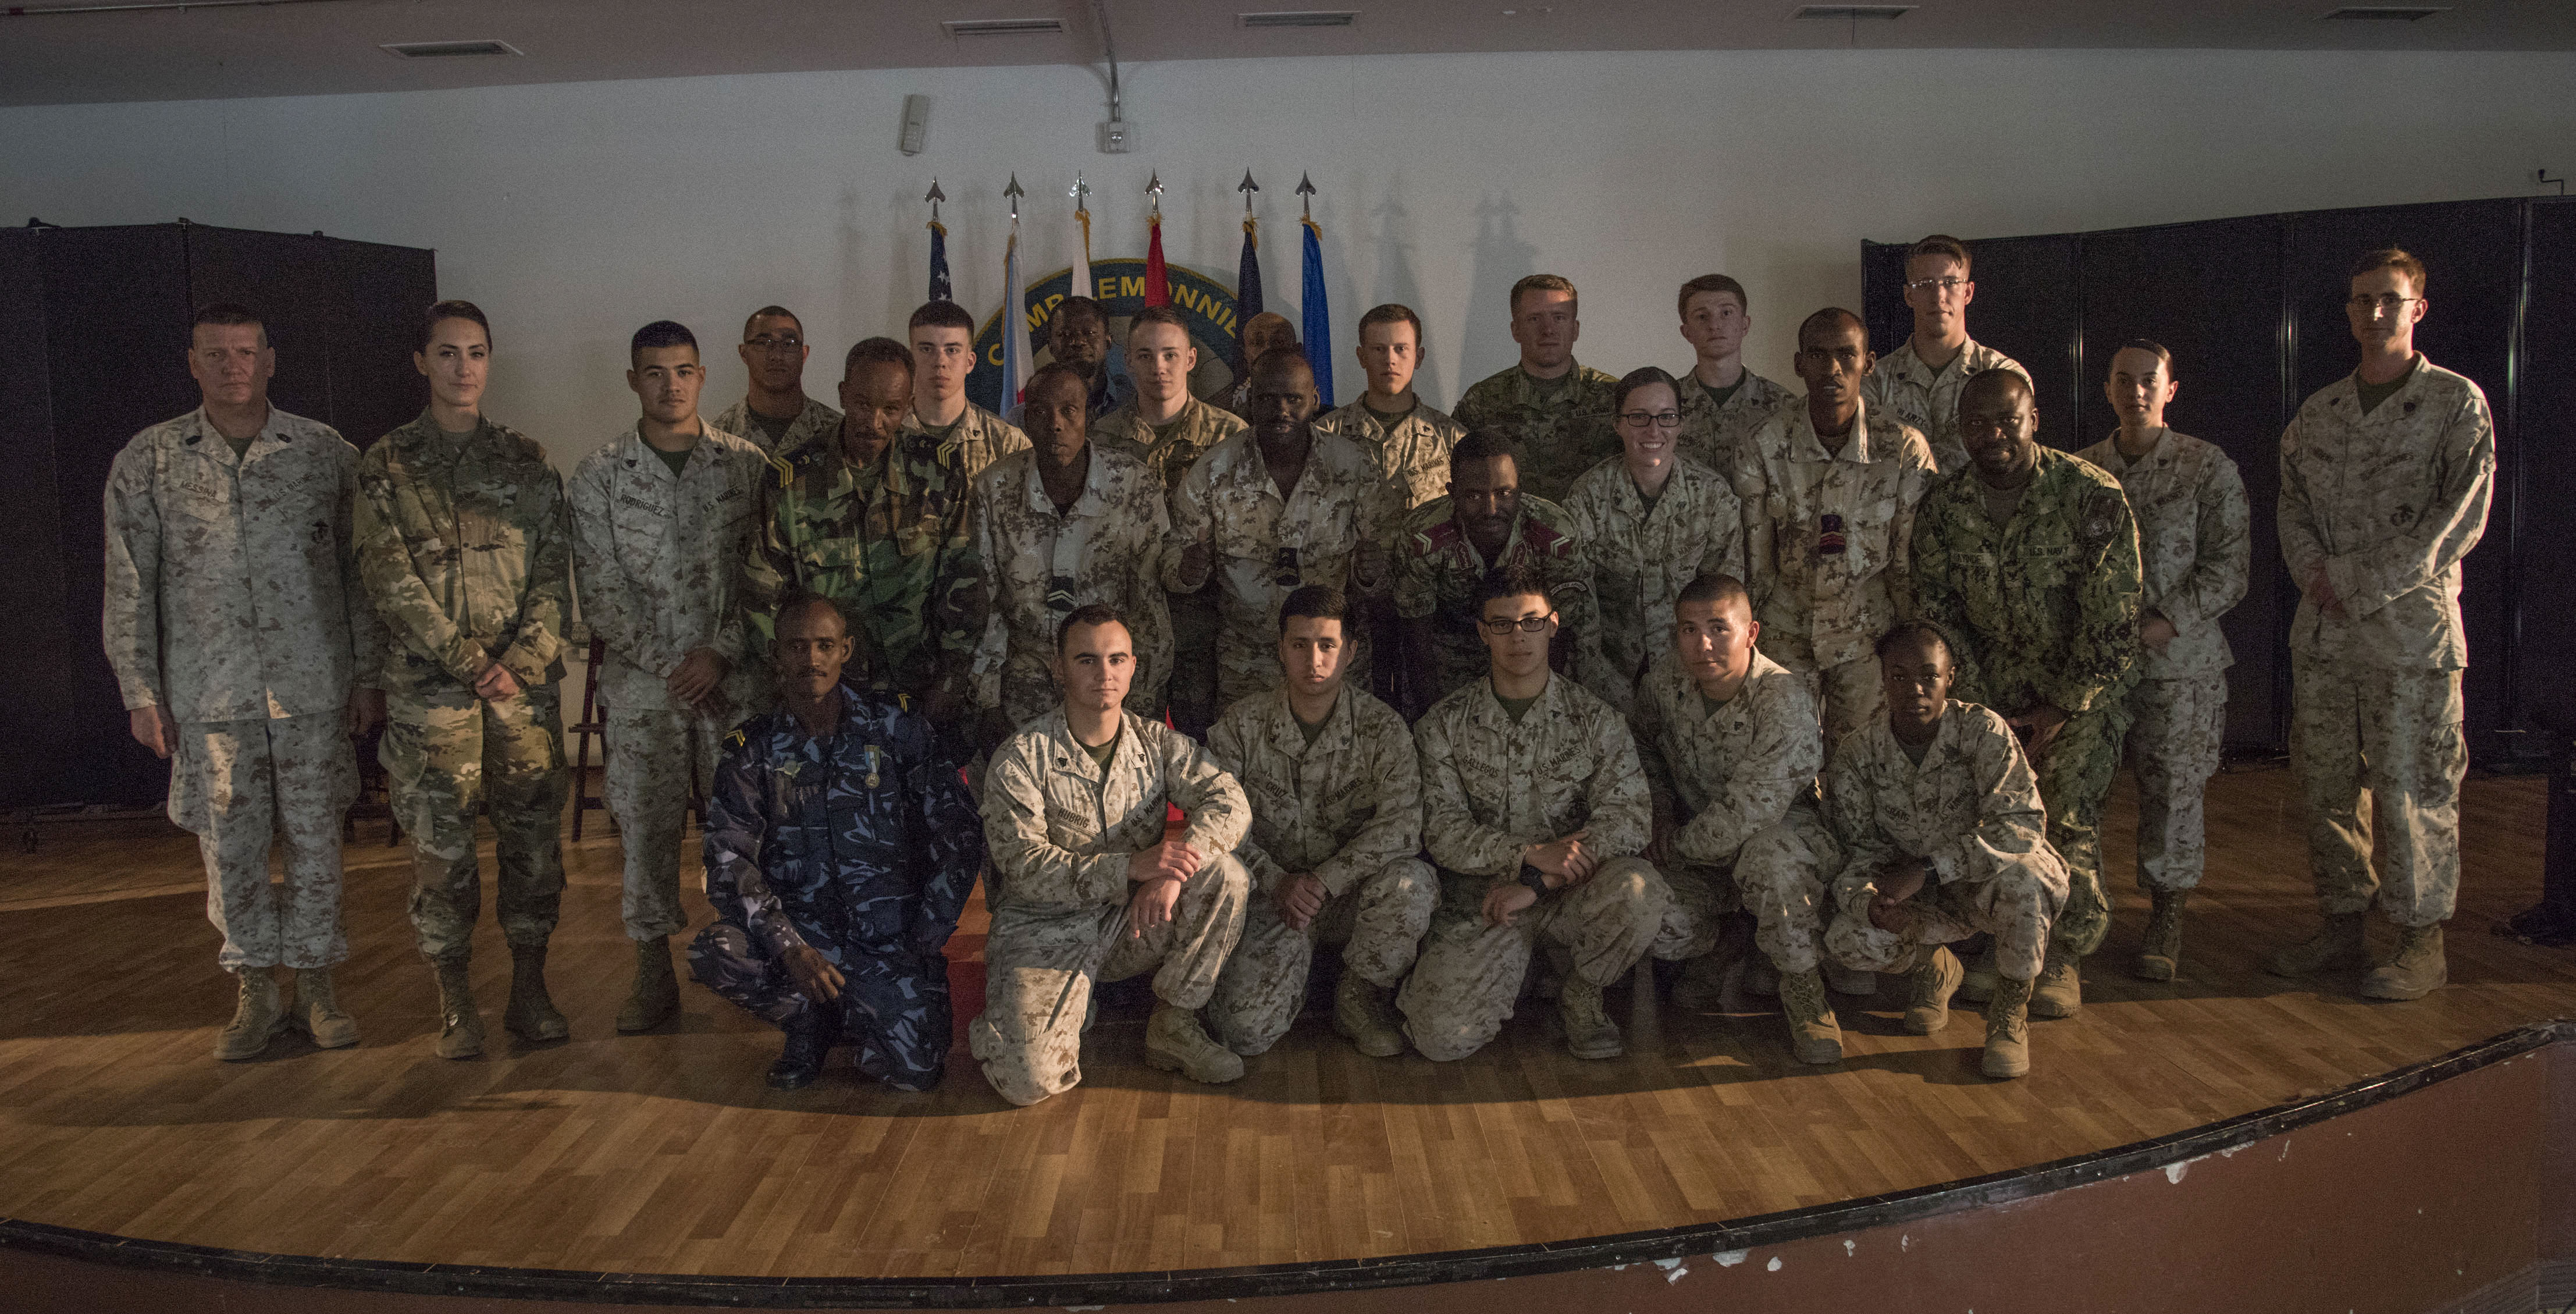 U.S. Marines, Soldiers and Sailors and Djiboutian military members pose for a group photo after graduating the Joint Corporals Course, hosted by Combined Joint Task Force – Horn of Africa at Camp Lemonnier, Jan. 24, 2018. The Joint Corporals Course is designed to provide junior service members with the knowledge and skills necessary to assume leadership roles of greater responsibility as a non-commissioned officer, as well as strengthen bonds between participating militaries. (U.S. Air National Guard photo by Staff Sgt. Allyson L. Manners)